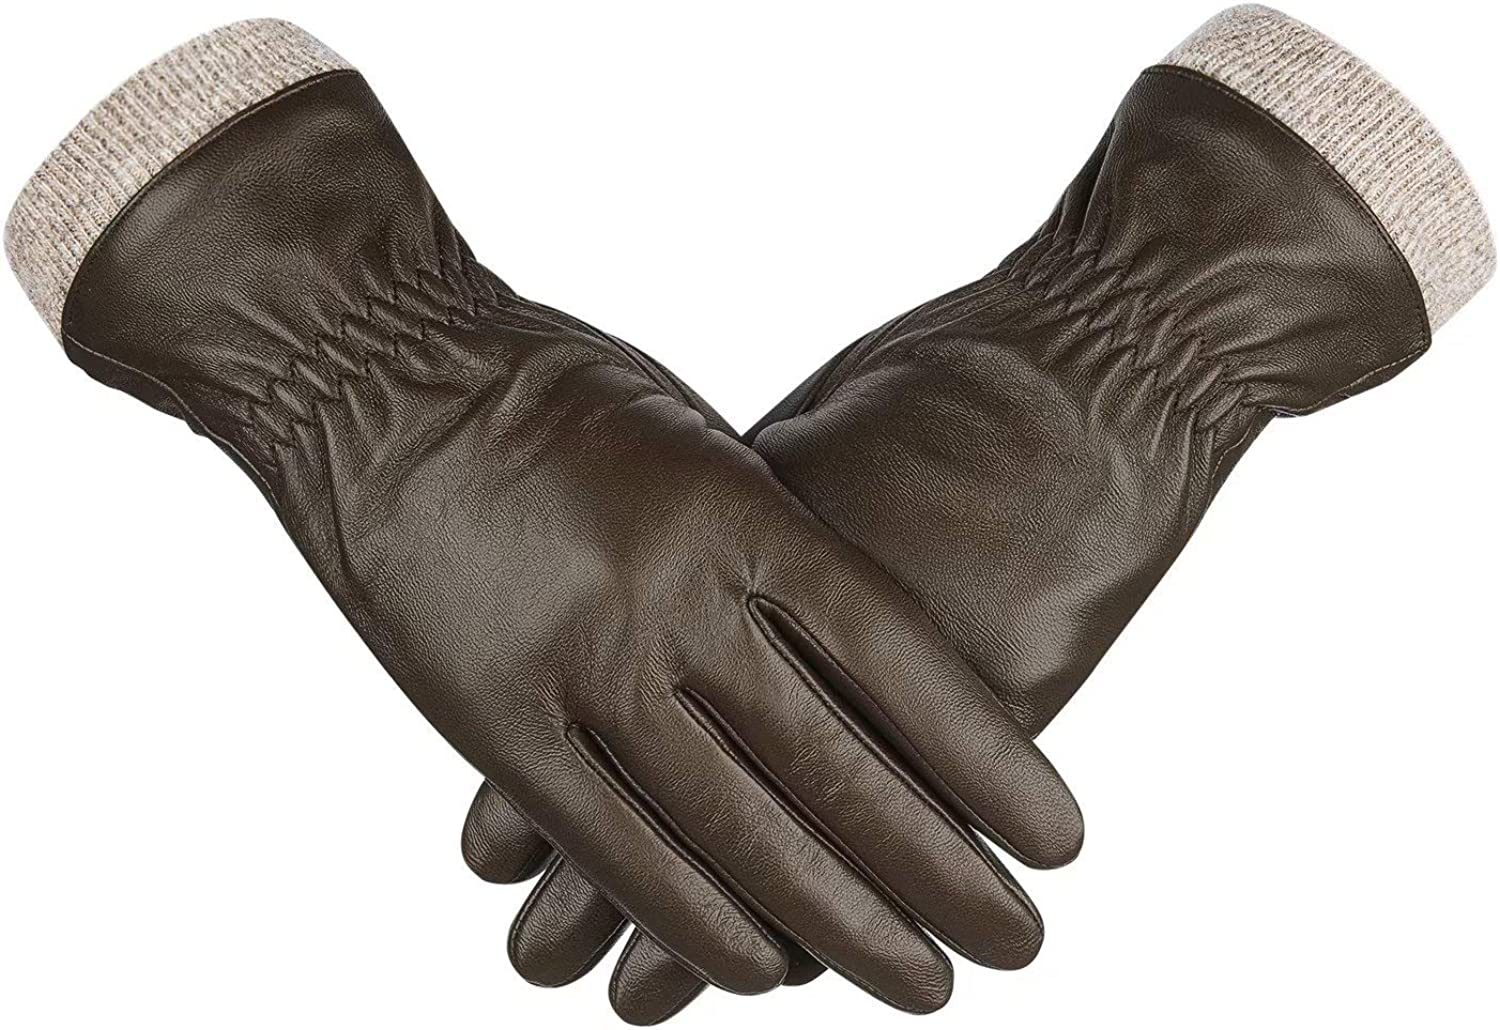 Genuine Sheepskin Leather Gloves For Women, Winter Warm Touchscreen Texting Cashmere Lined Driving Motorcycle Dress Gloves By Alepo (Khaki-XXL)